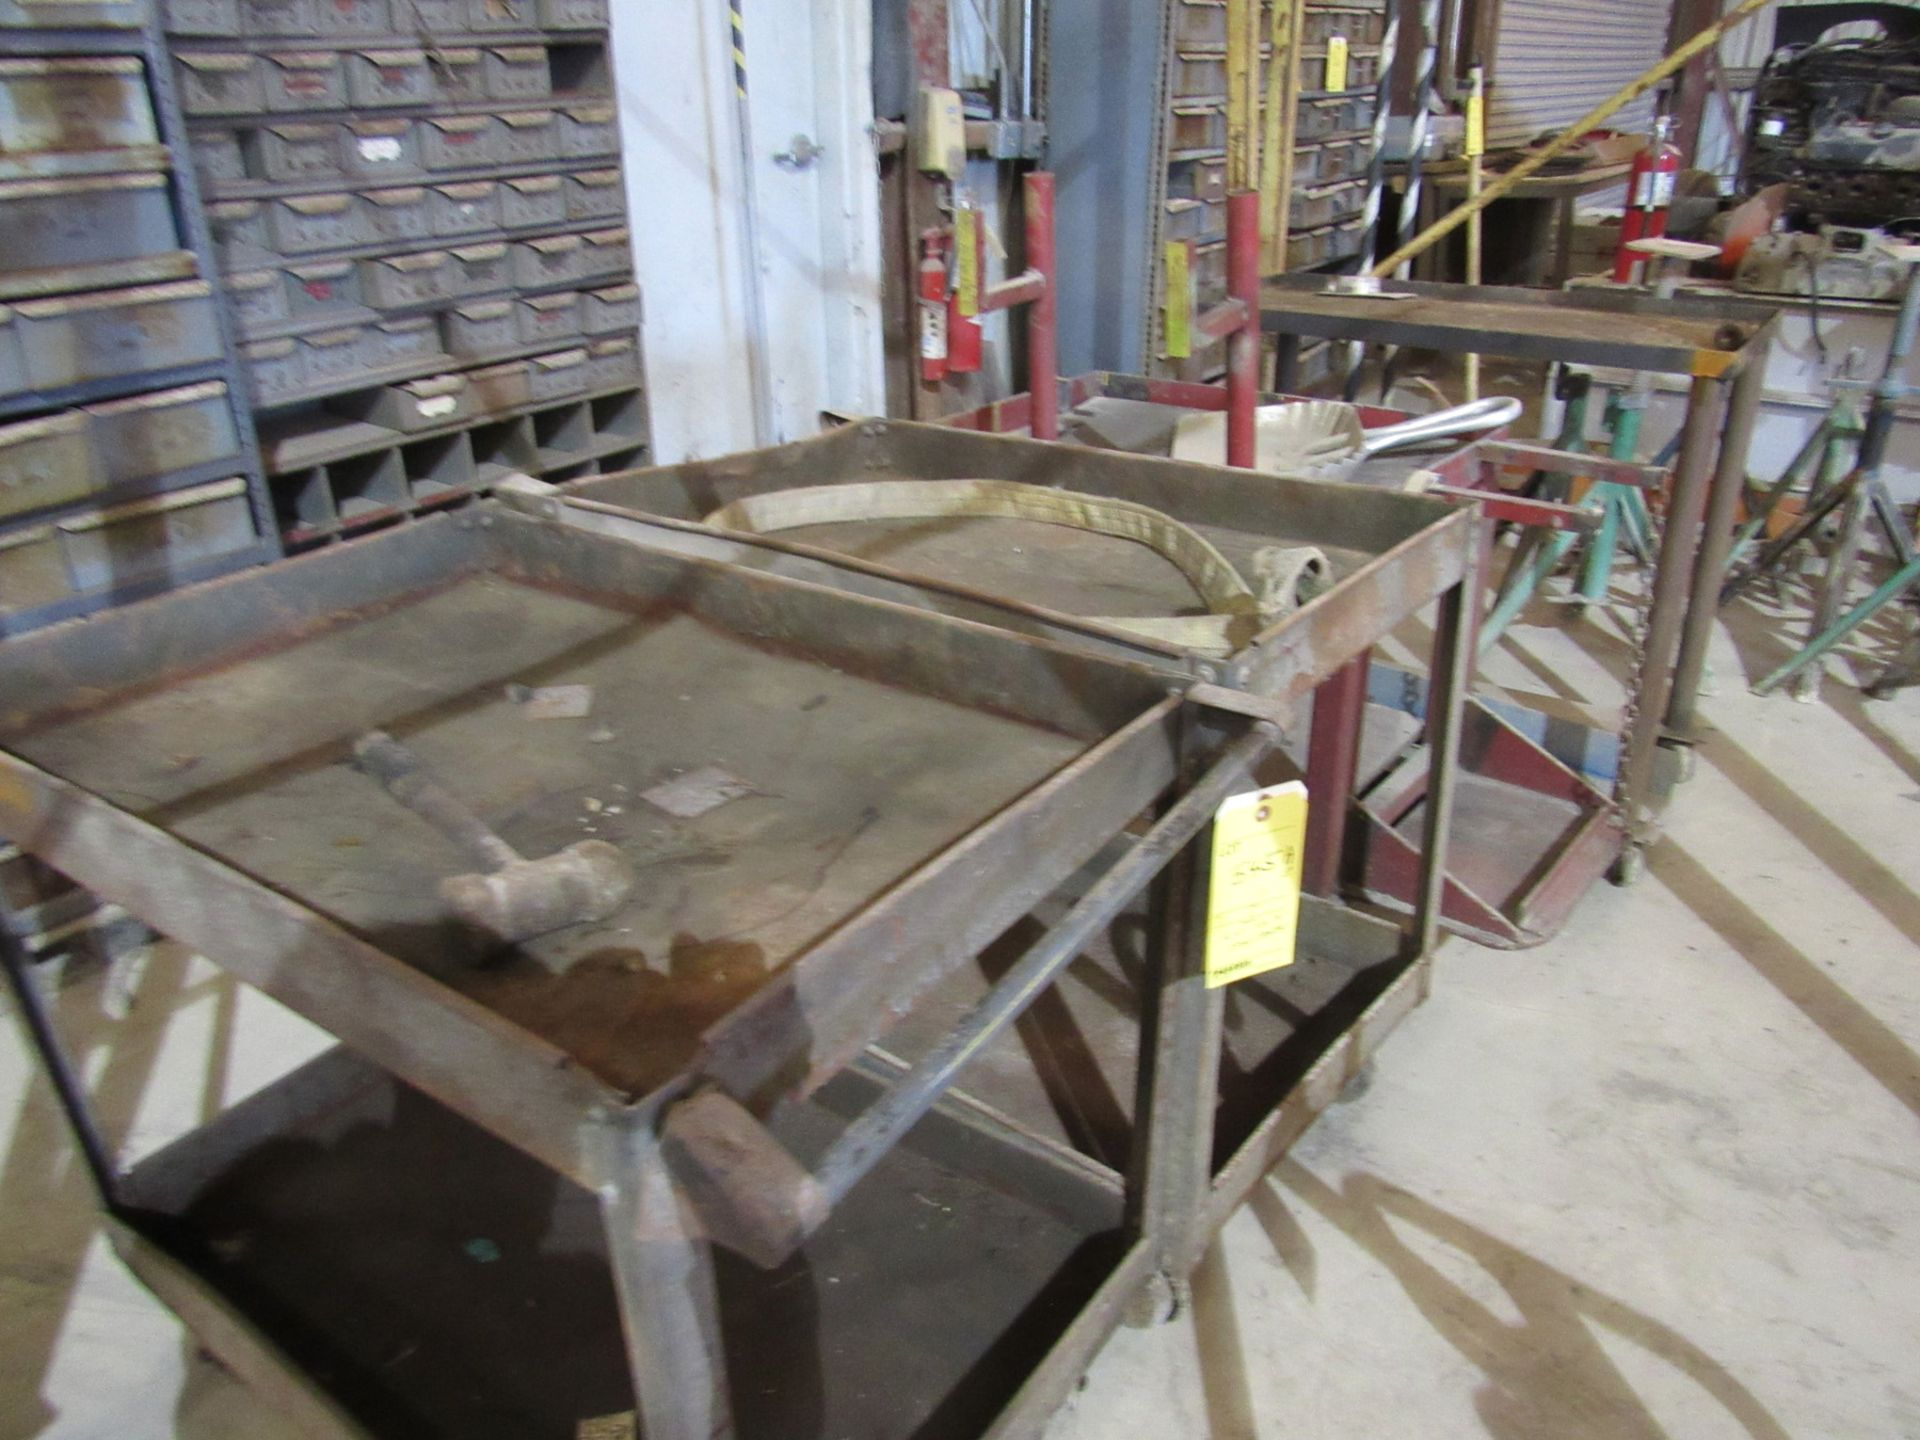 Lot of 4: Shop Carts - Image 2 of 2